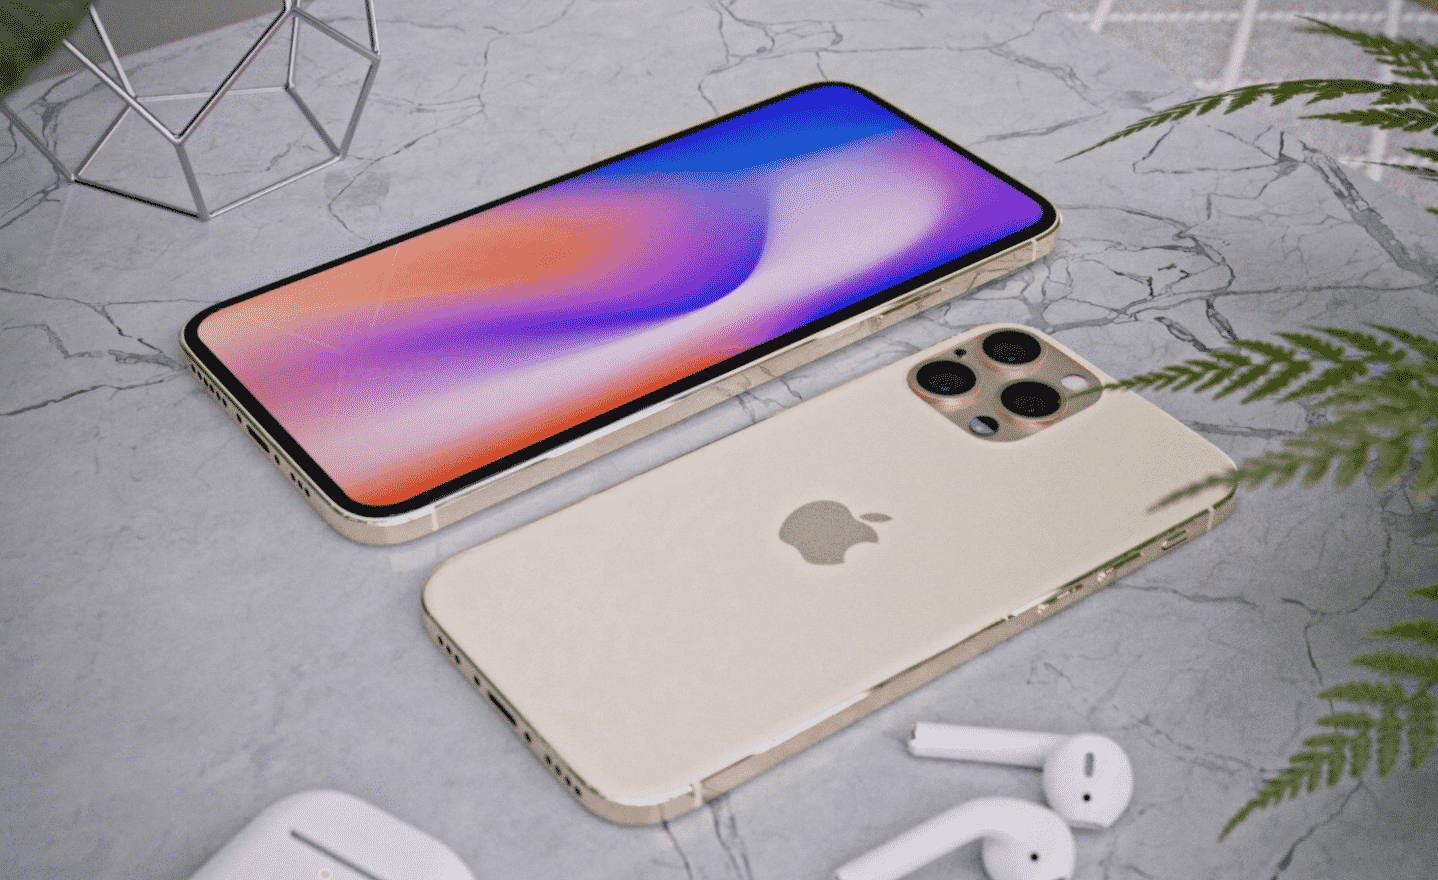 The Upcoming iPhone 12 and iPhone 12 Pro- What You Should Know before Buying